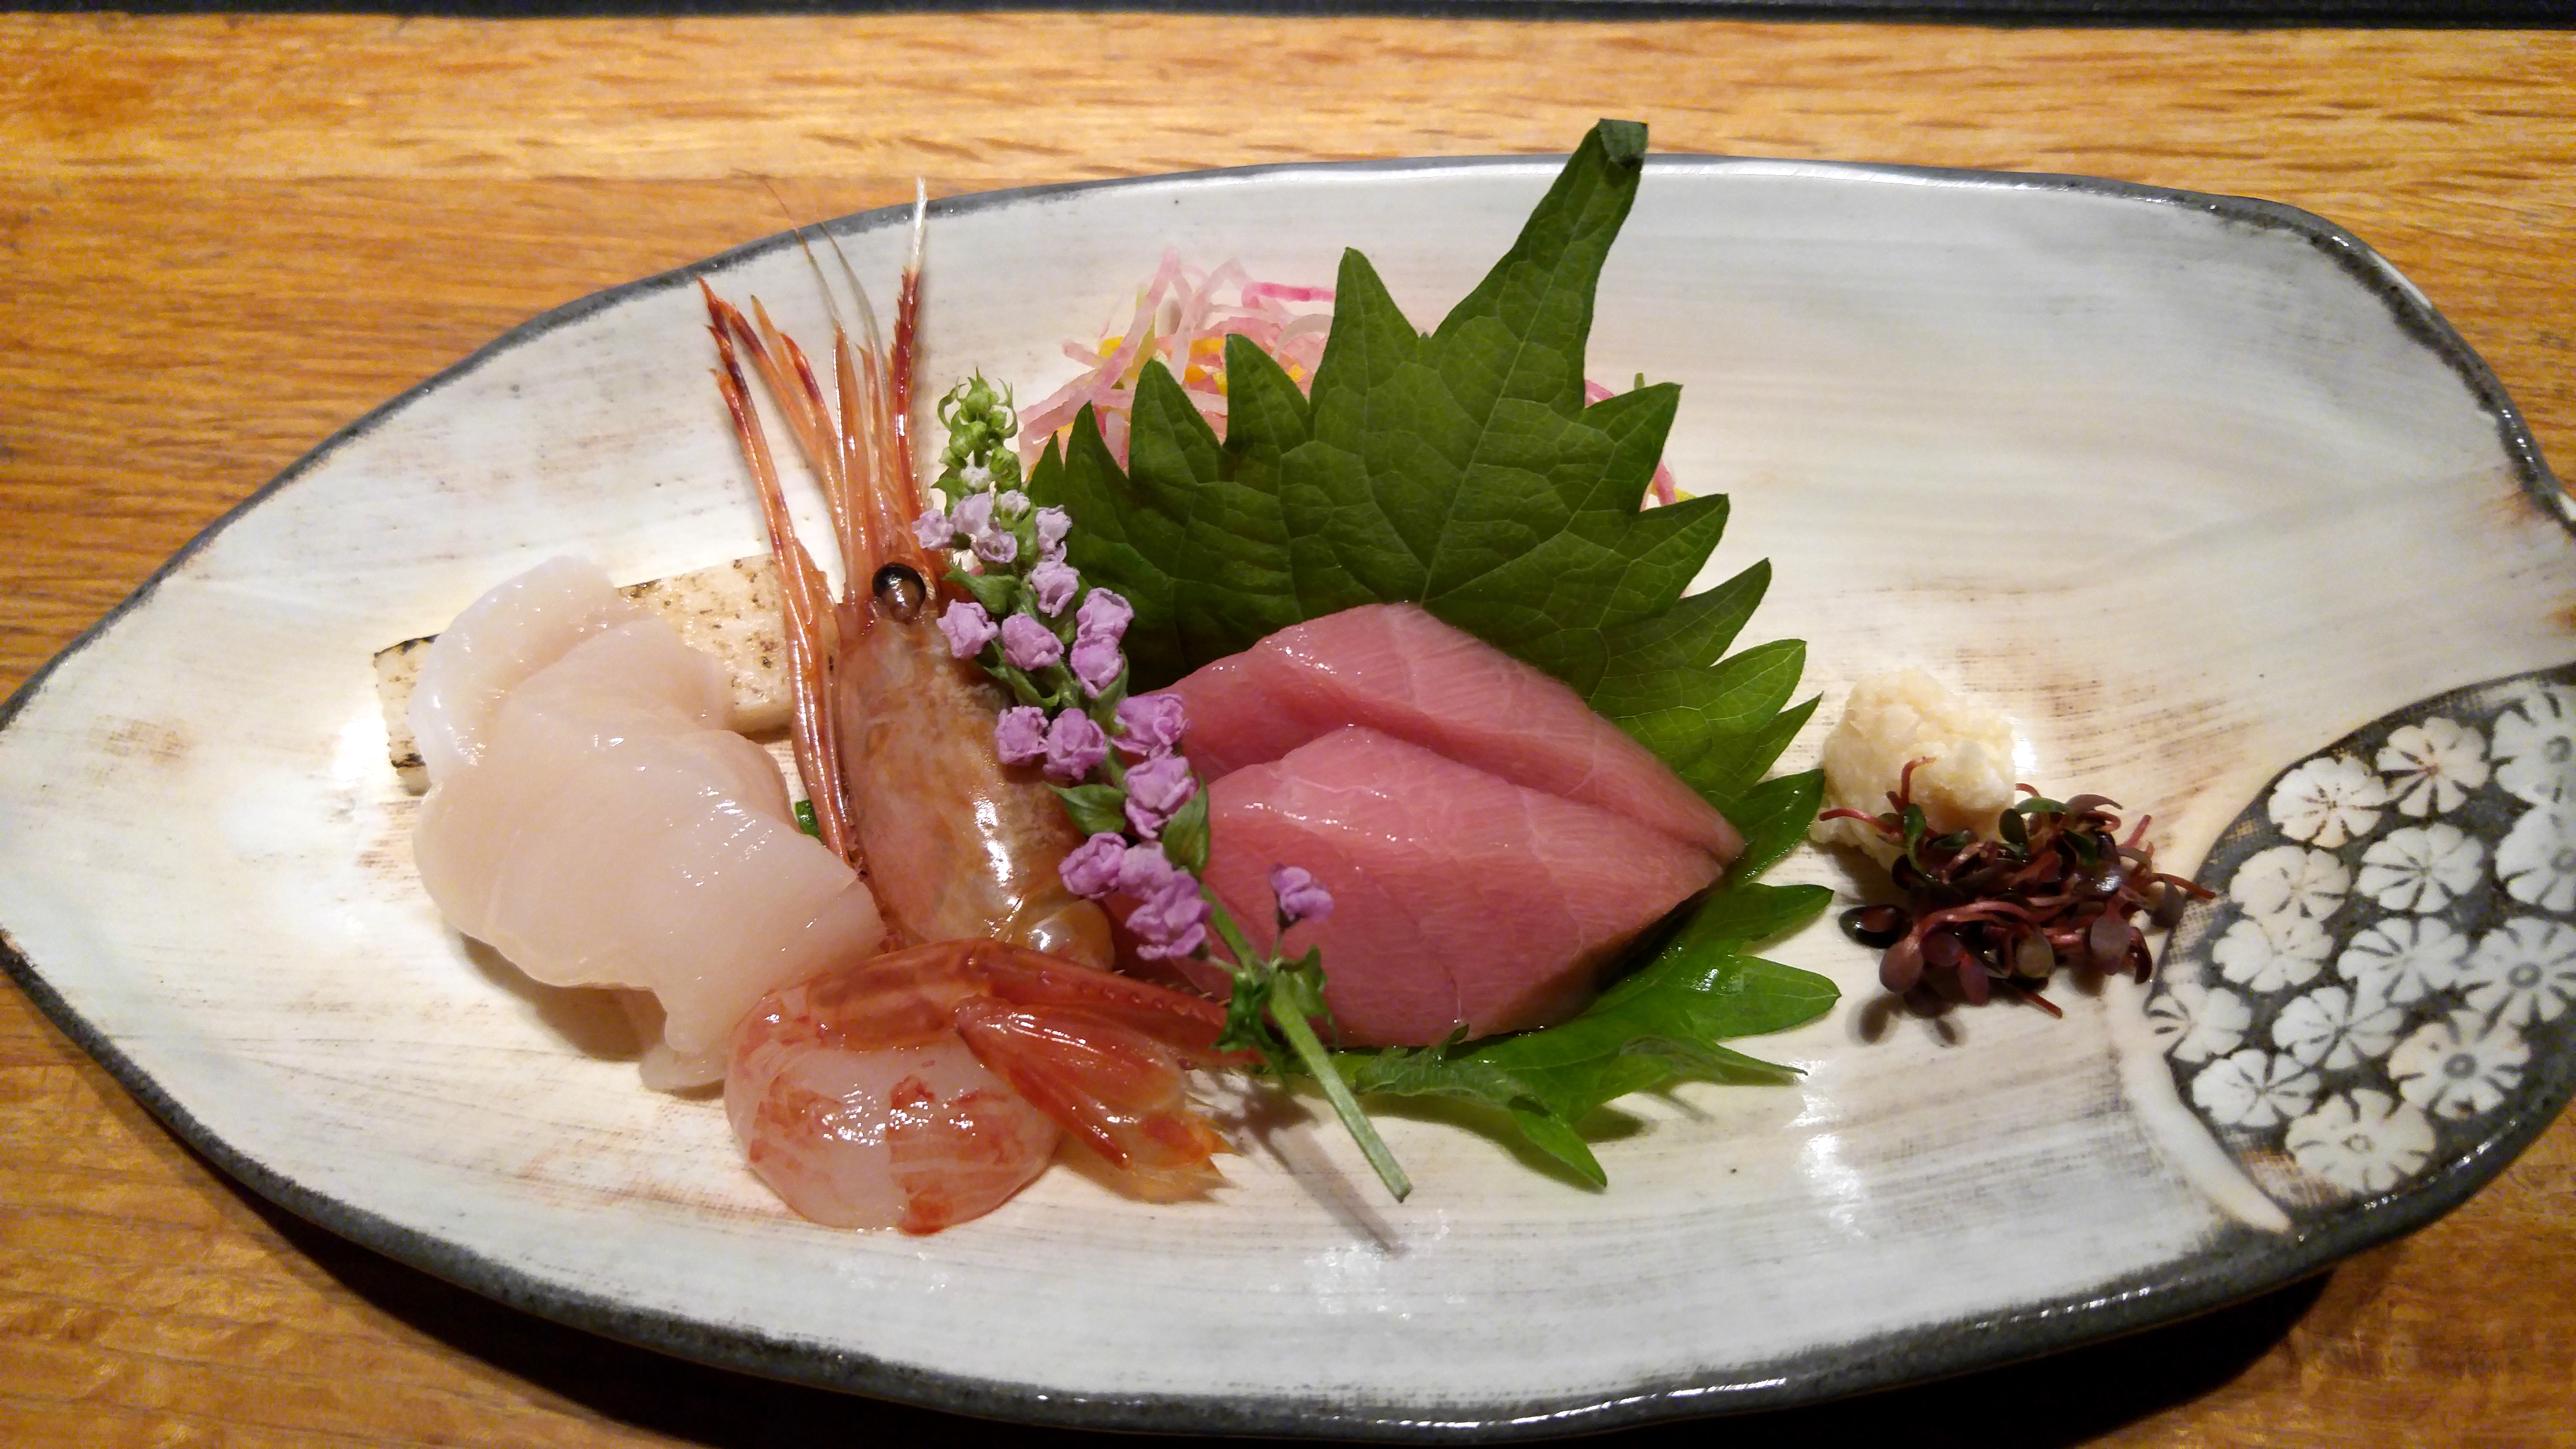 Raw Tuna In Toro Raw Scallops And Pink Shrimp Flavorful Journeys